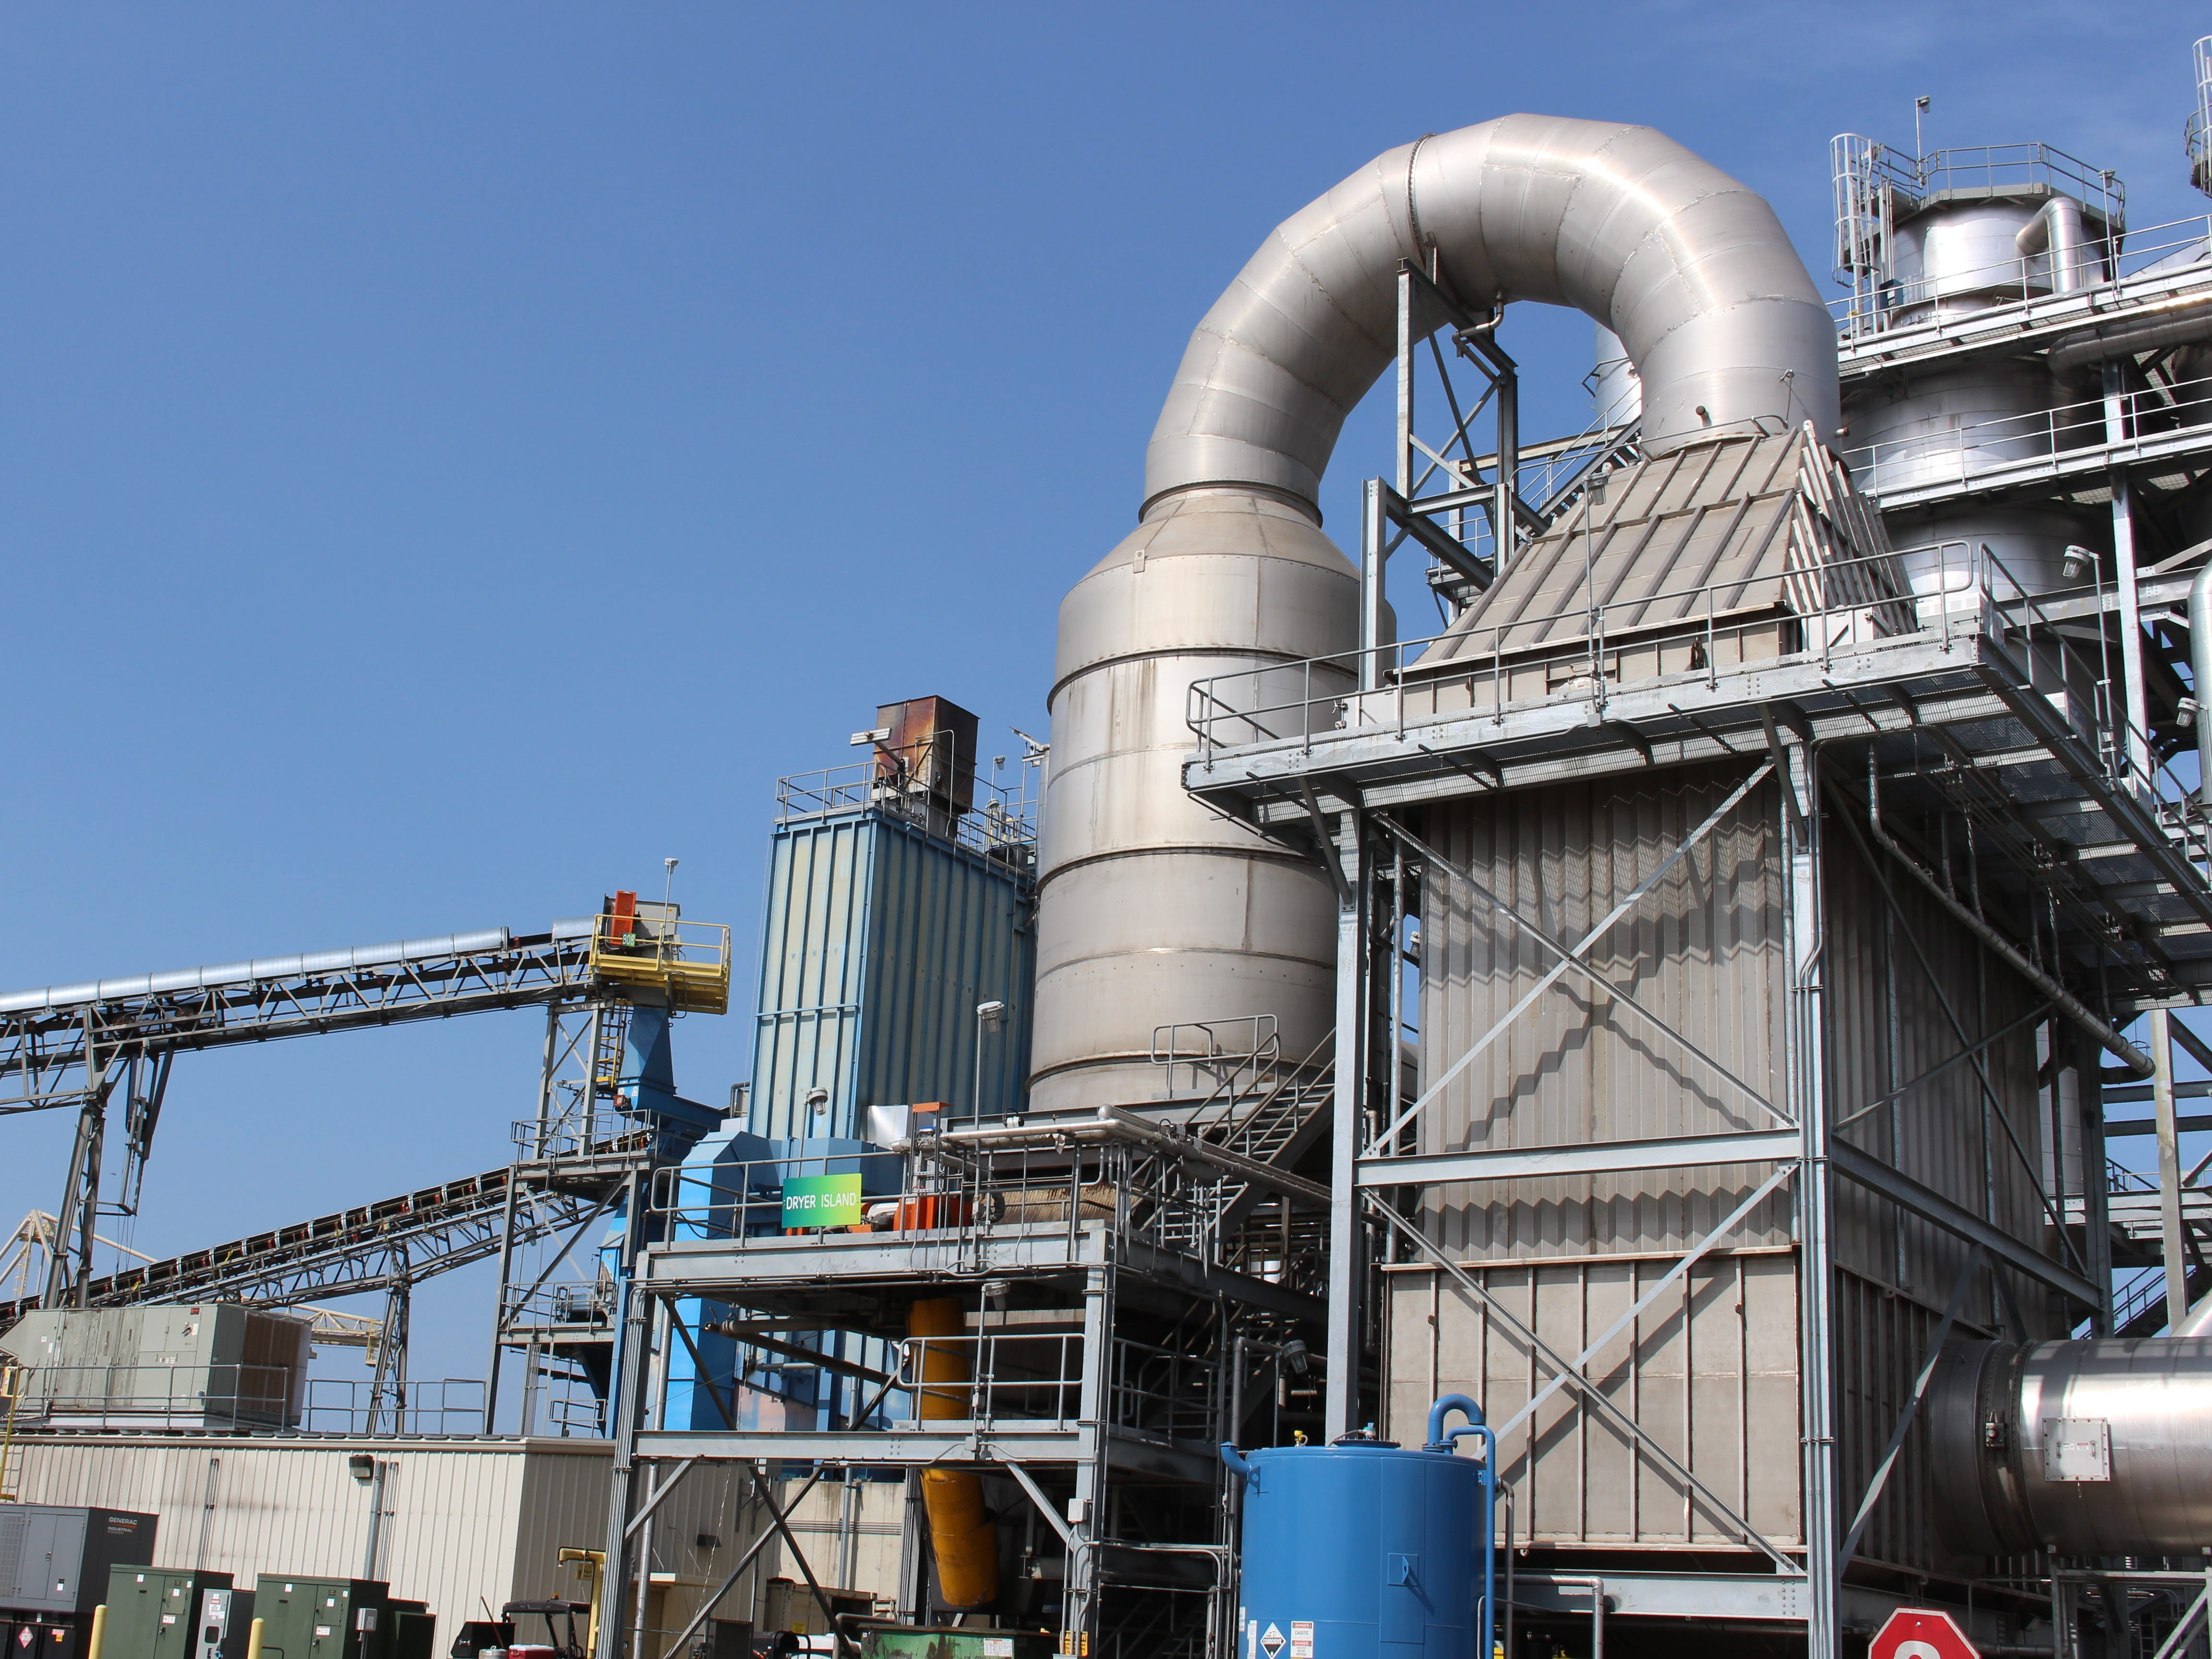 Drax Biomass converts pine timber and sawmill residual fiber into biomass pellets that are used to generate power in the United Kingdom. Hammermills reduce the size of wood chips.